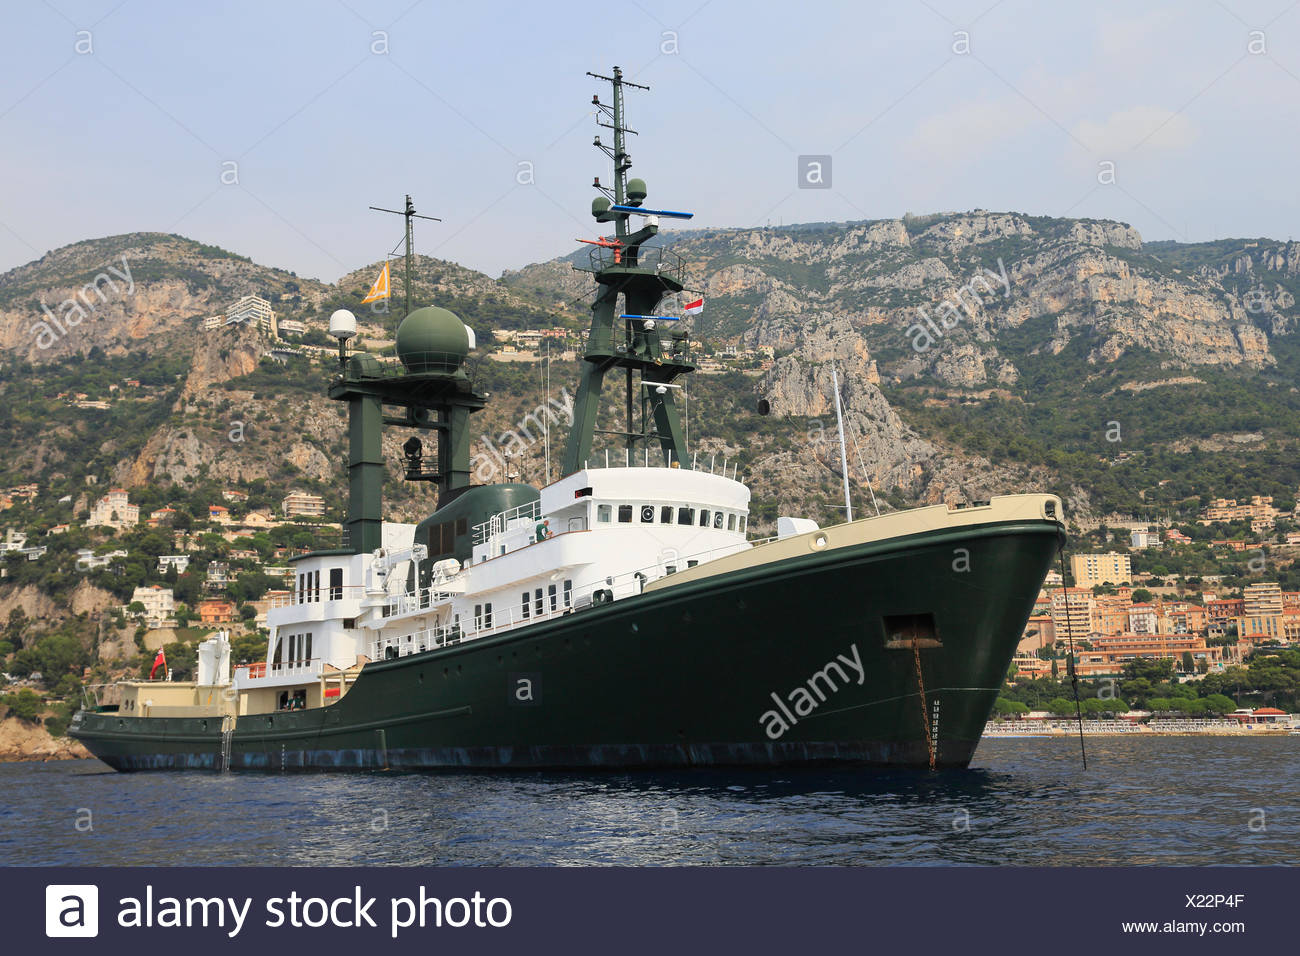 Converted Tug Stock Photos & Converted Tug Stock Images - Alamy